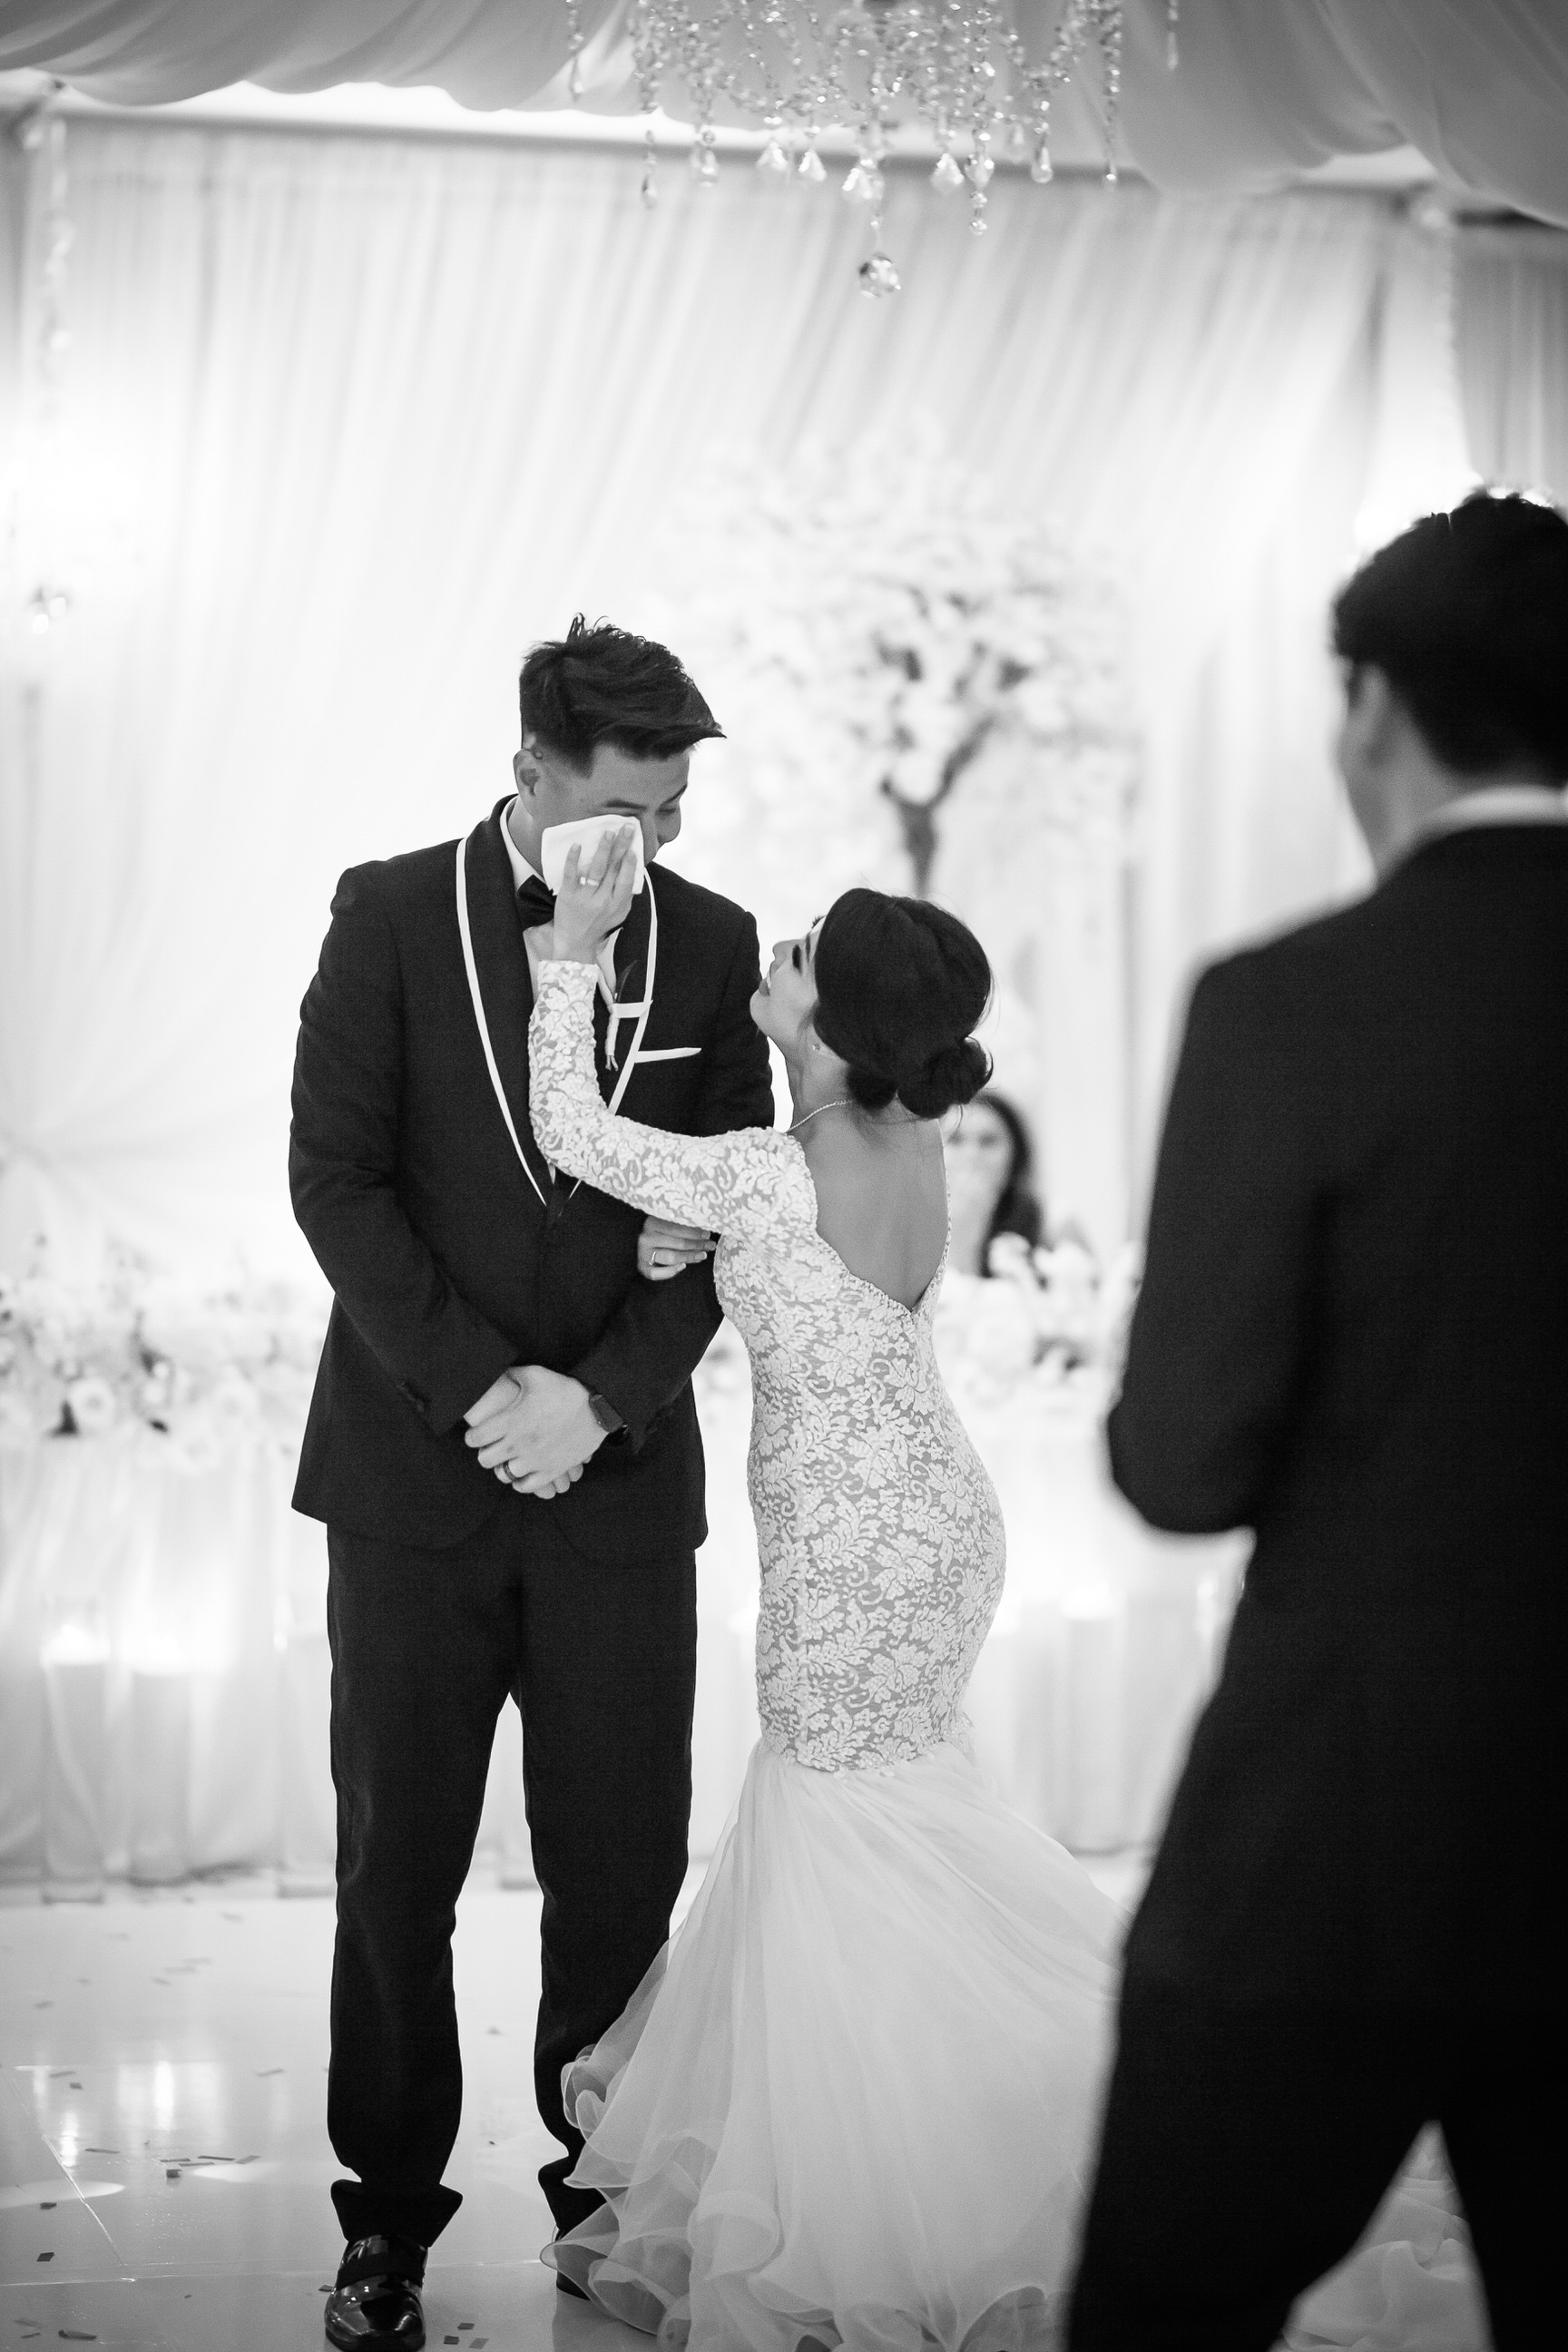 Dream_Wedding_Thanh_Thanh-4185.jpg